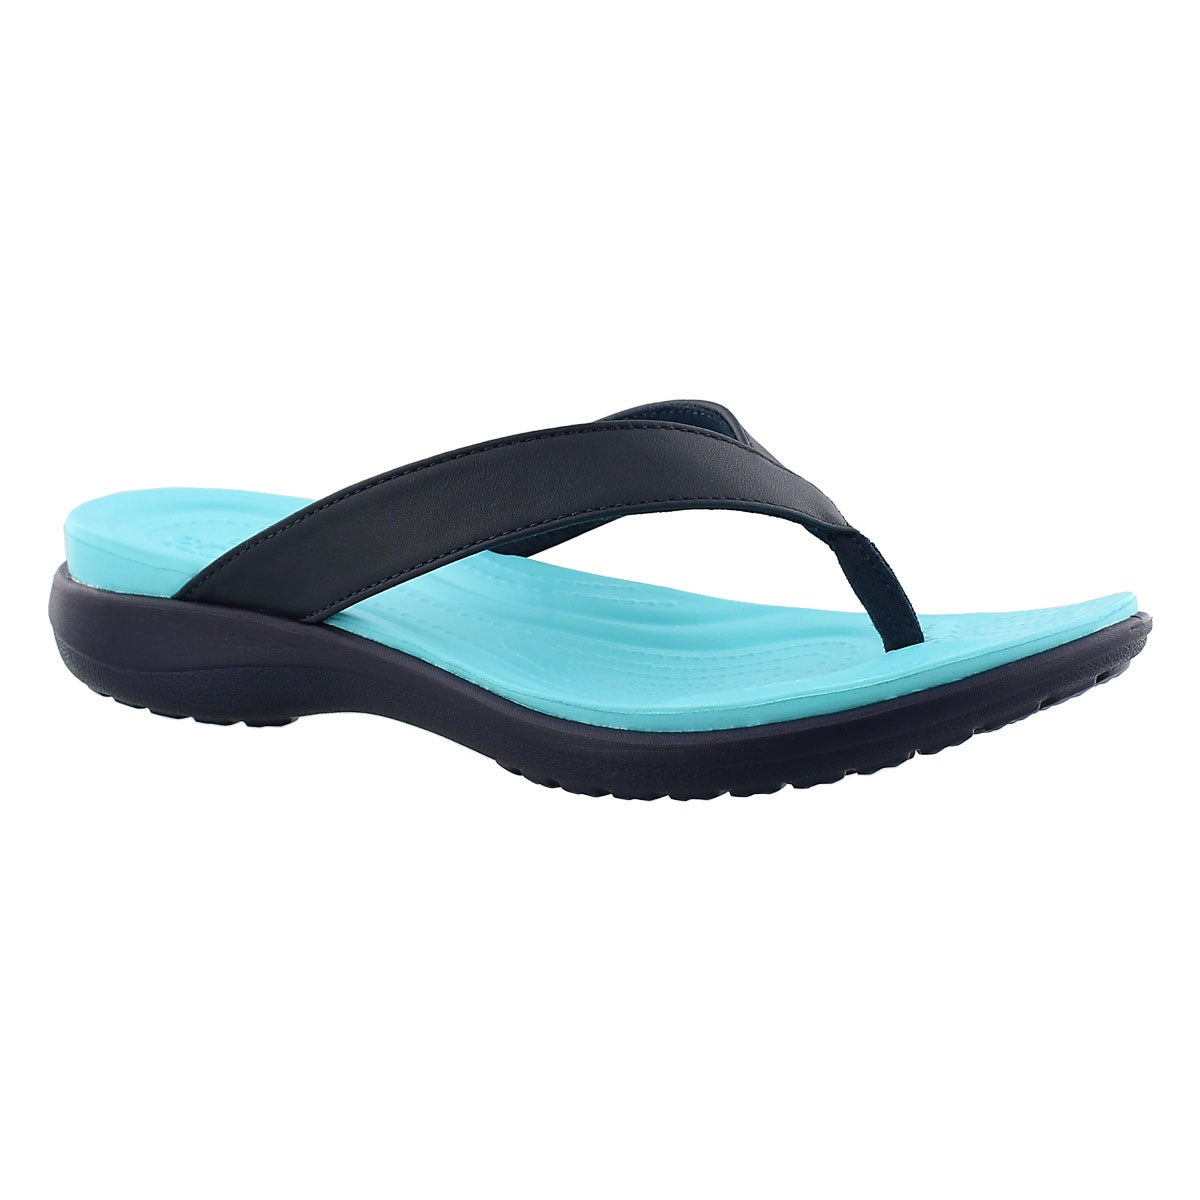 Women's CAPRI V FLIP navy/blue thong sandals